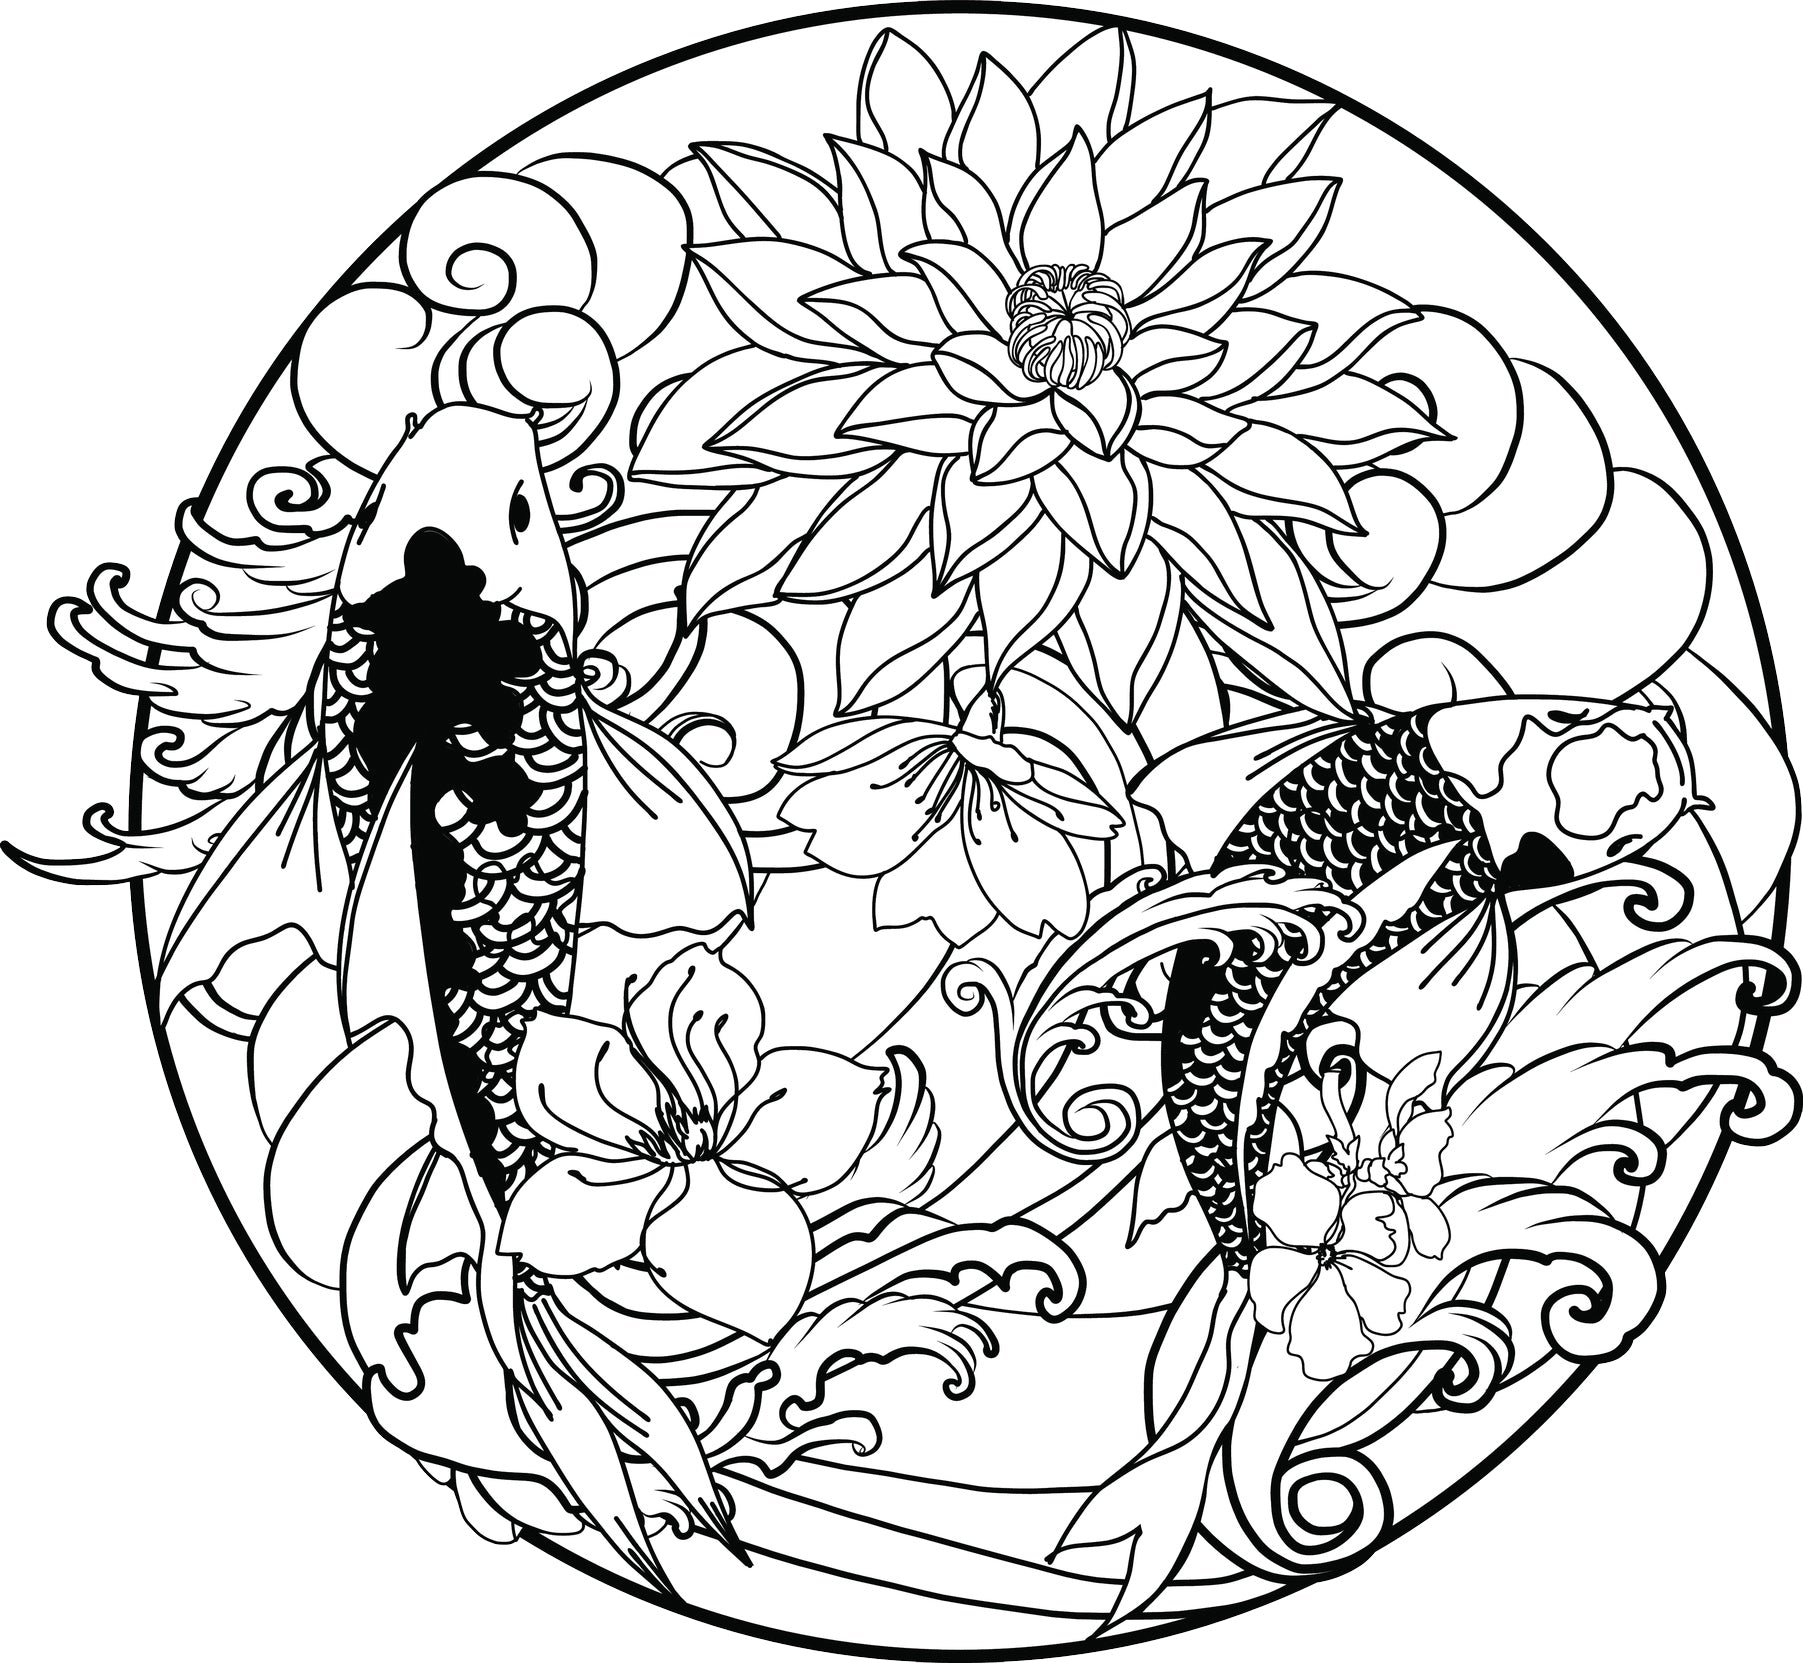 Cool japanese koi fish flowers and waves cartoon icon black and white vinyl sticker